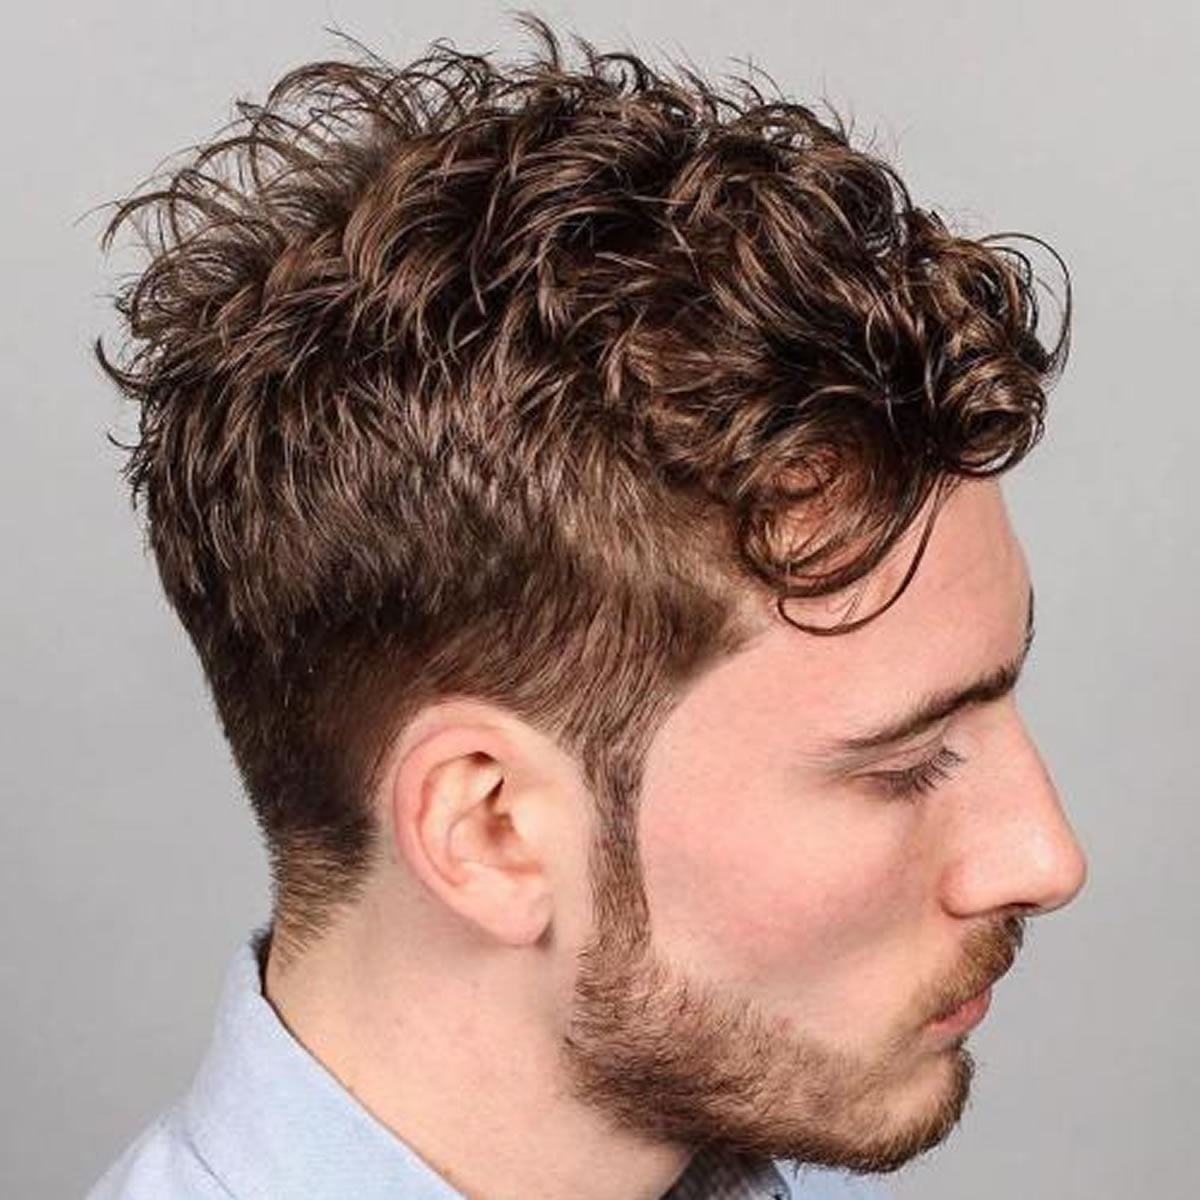 how to style boys curly hair mens hairstyles for curly hair 2018 hairstyles 6872